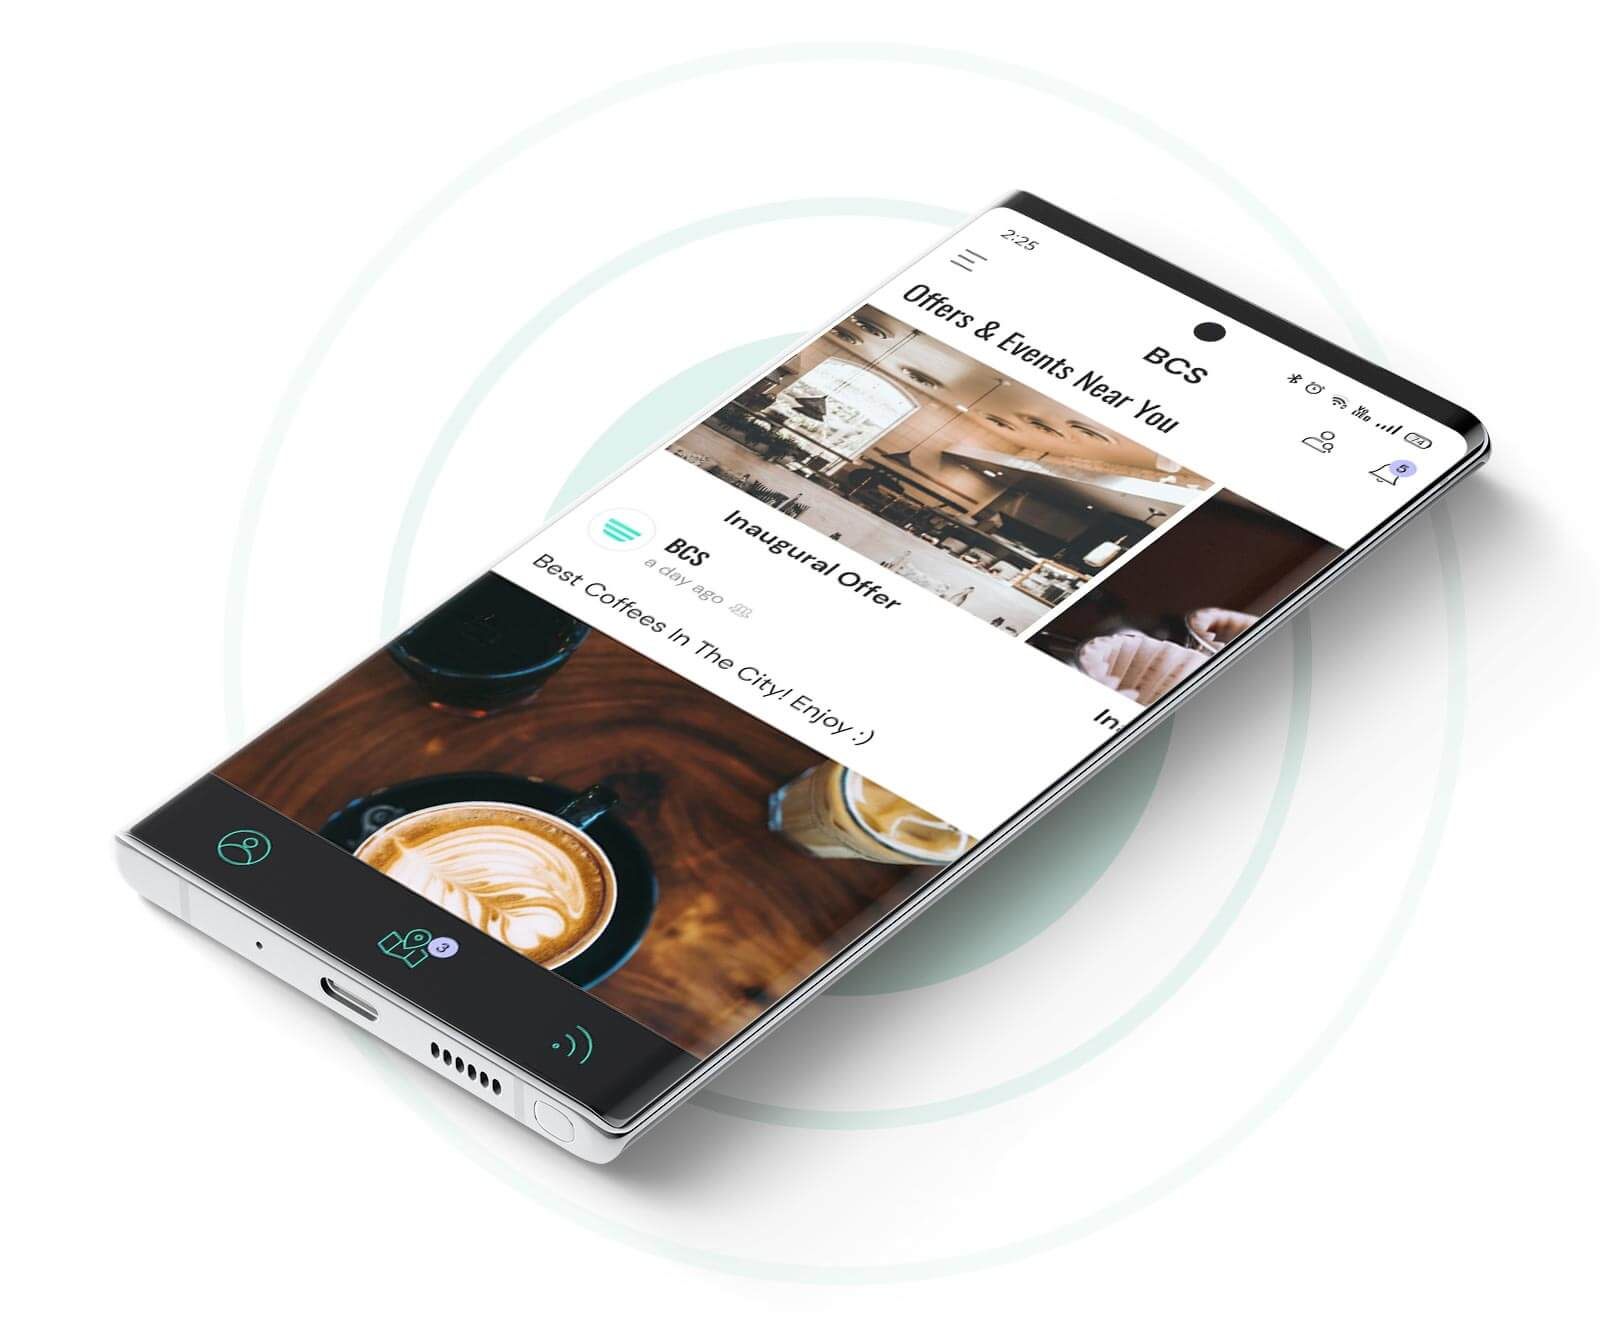 The Best Coffee Shops app shown on a Samsung Galaxy Note